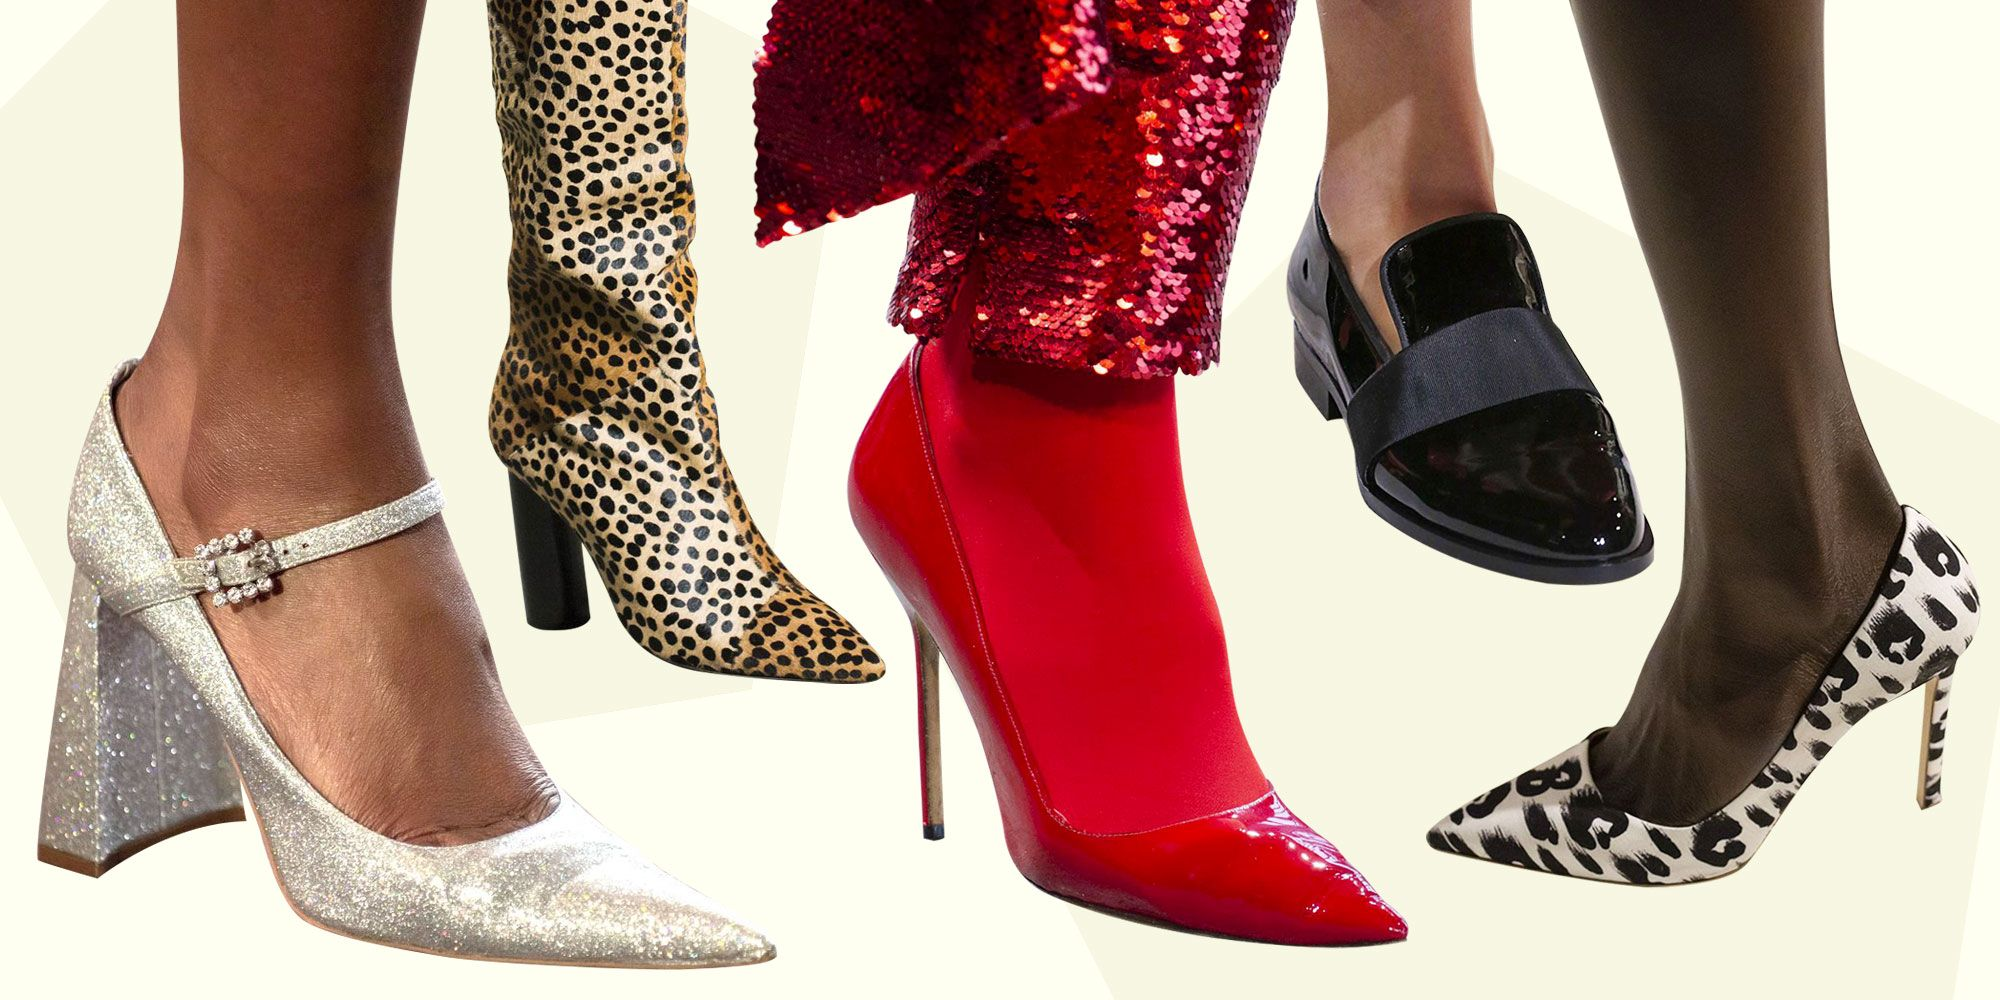 12 Fall Shoe Trends 2019 Top Fall Accessory Runway Trends For Women